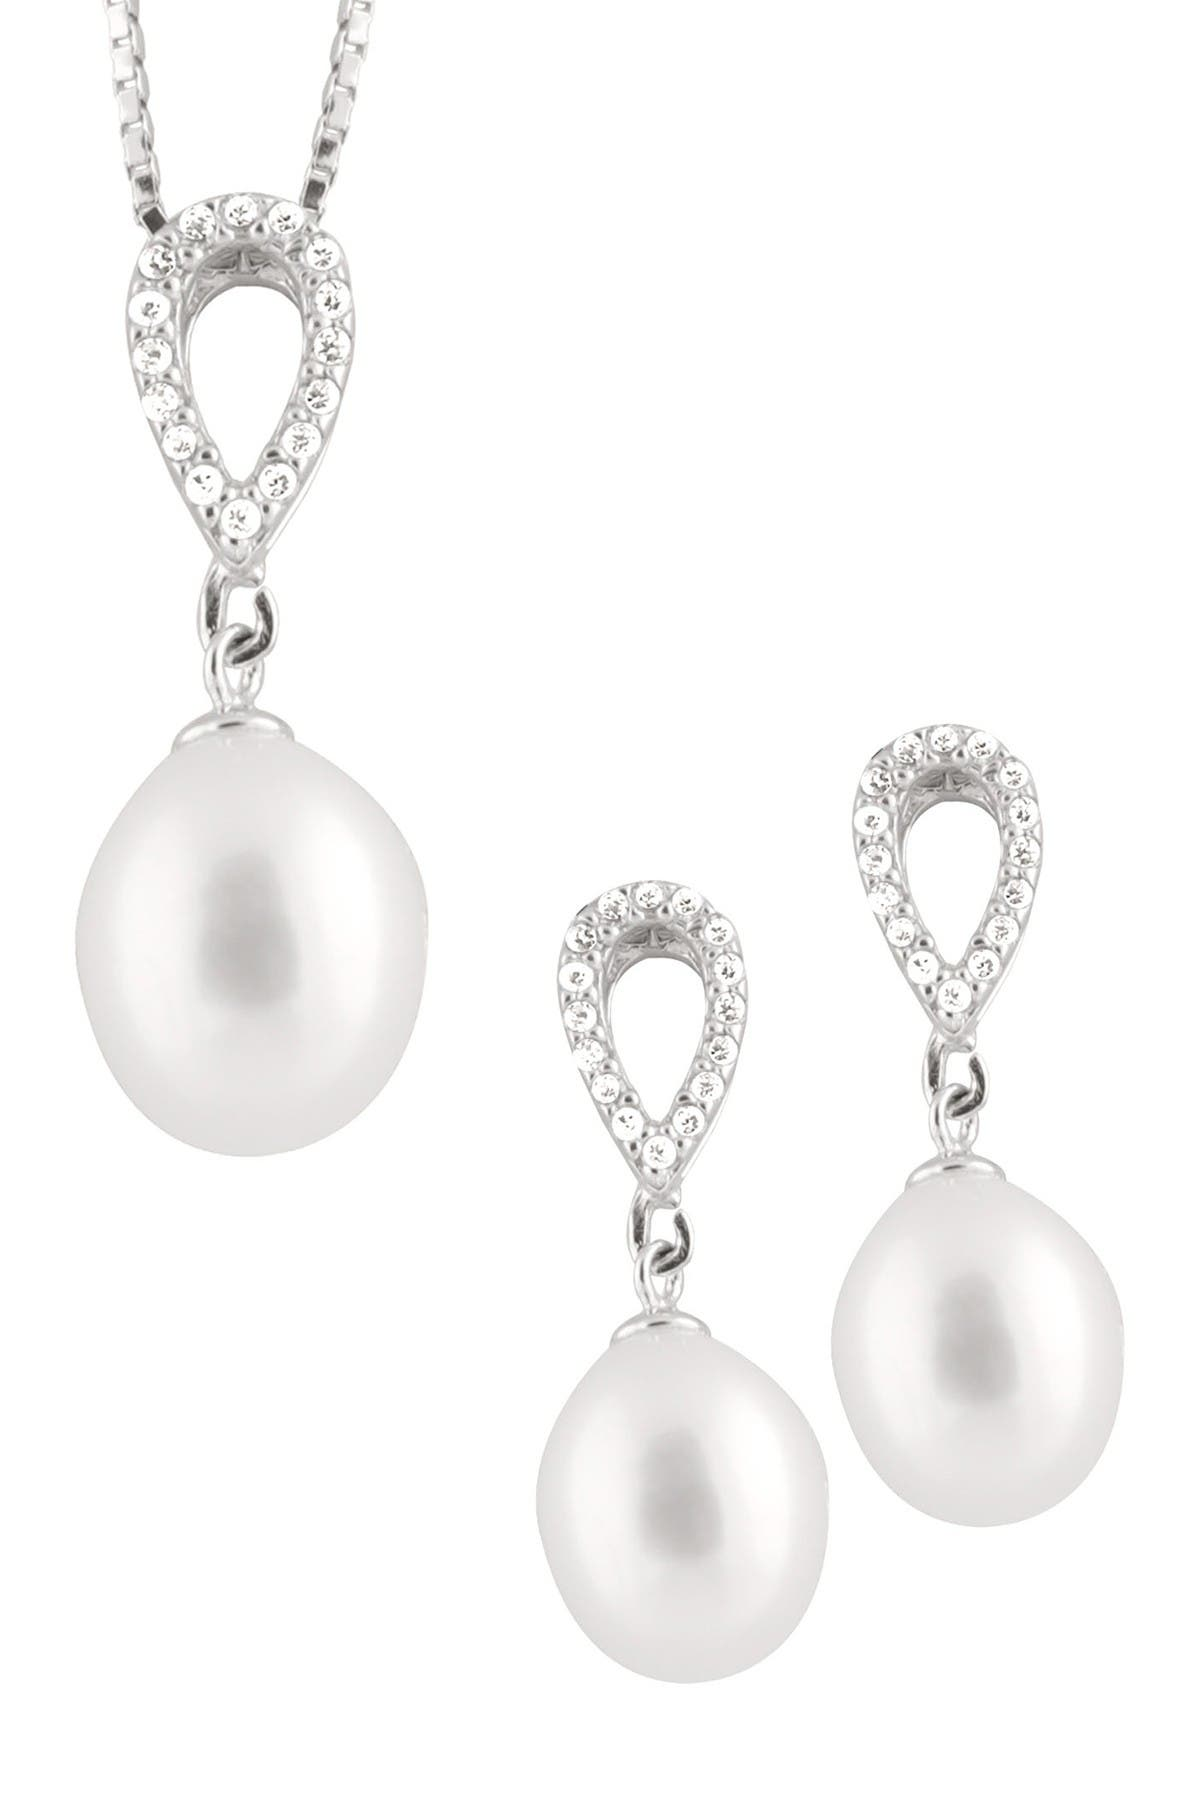 Splendid Pearls 8-9mm Freshwater Pearl Pave CZ Teardrop Necklace & Earrings Set at Nordstrom Rack